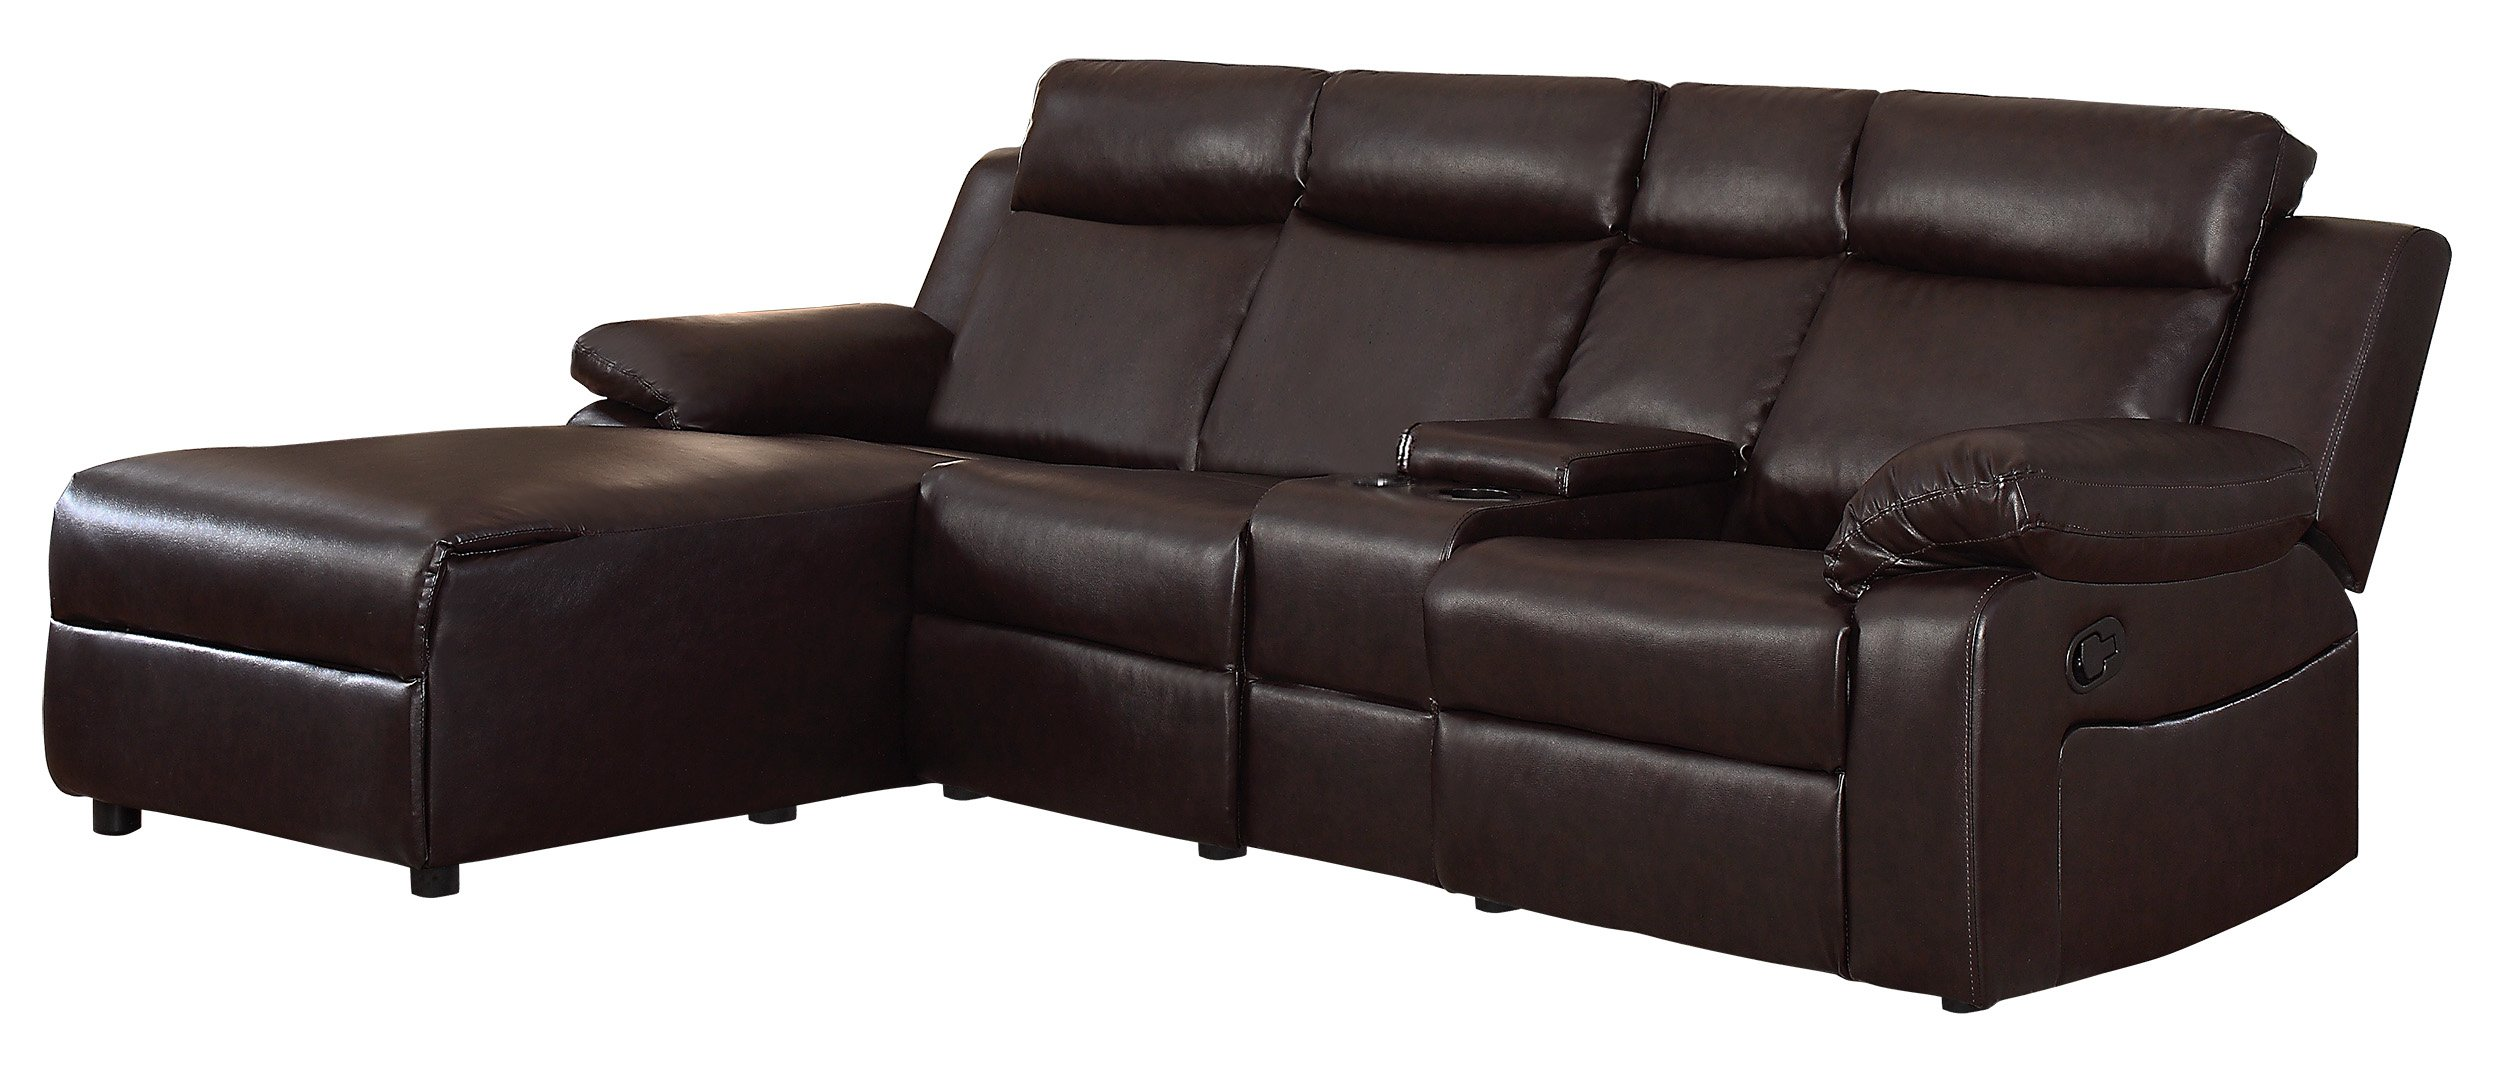 Details about Brown Large Recliner Sectional Sofa Couch Chaise Lounge with  Console Small Space